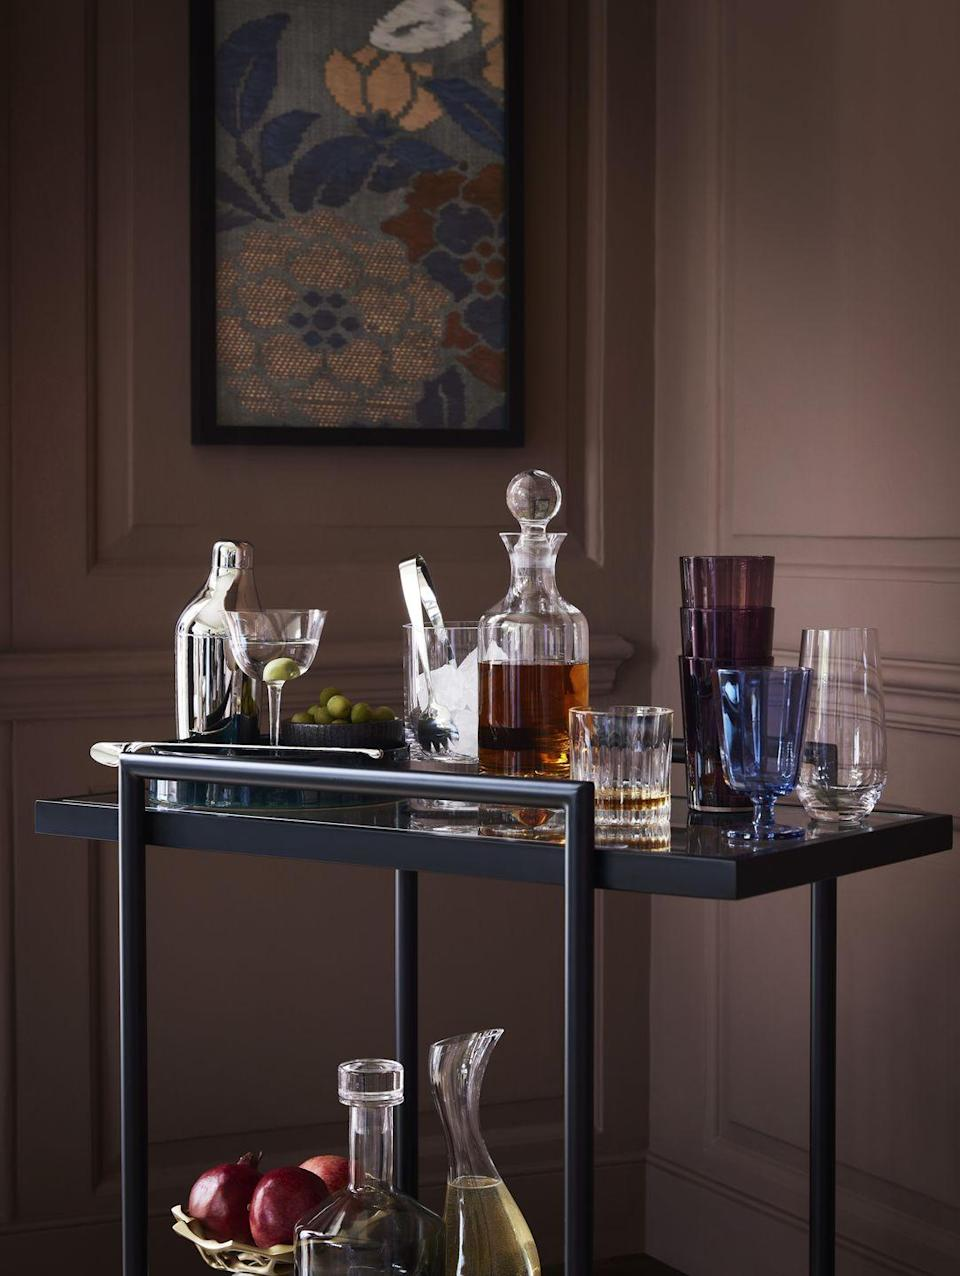 """<p>The bar cart is an essential piece of entertaining, especially after months of not being able to see loved ones. We love this classy black style from John Lewis, which has two open shelves to show off your favourite tipple. </p><p><strong>READ MORE</strong>: <a href=""""https://www.housebeautiful.com/uk/decorate/display/a31904667/drinks-trolley-bar-cart/"""" rel=""""nofollow noopener"""" target=""""_blank"""" data-ylk=""""slk:10 stylish bar carts and 5 ways to style one"""" class=""""link rapid-noclick-resp"""">10 stylish bar carts and 5 ways to style one</a></p>"""